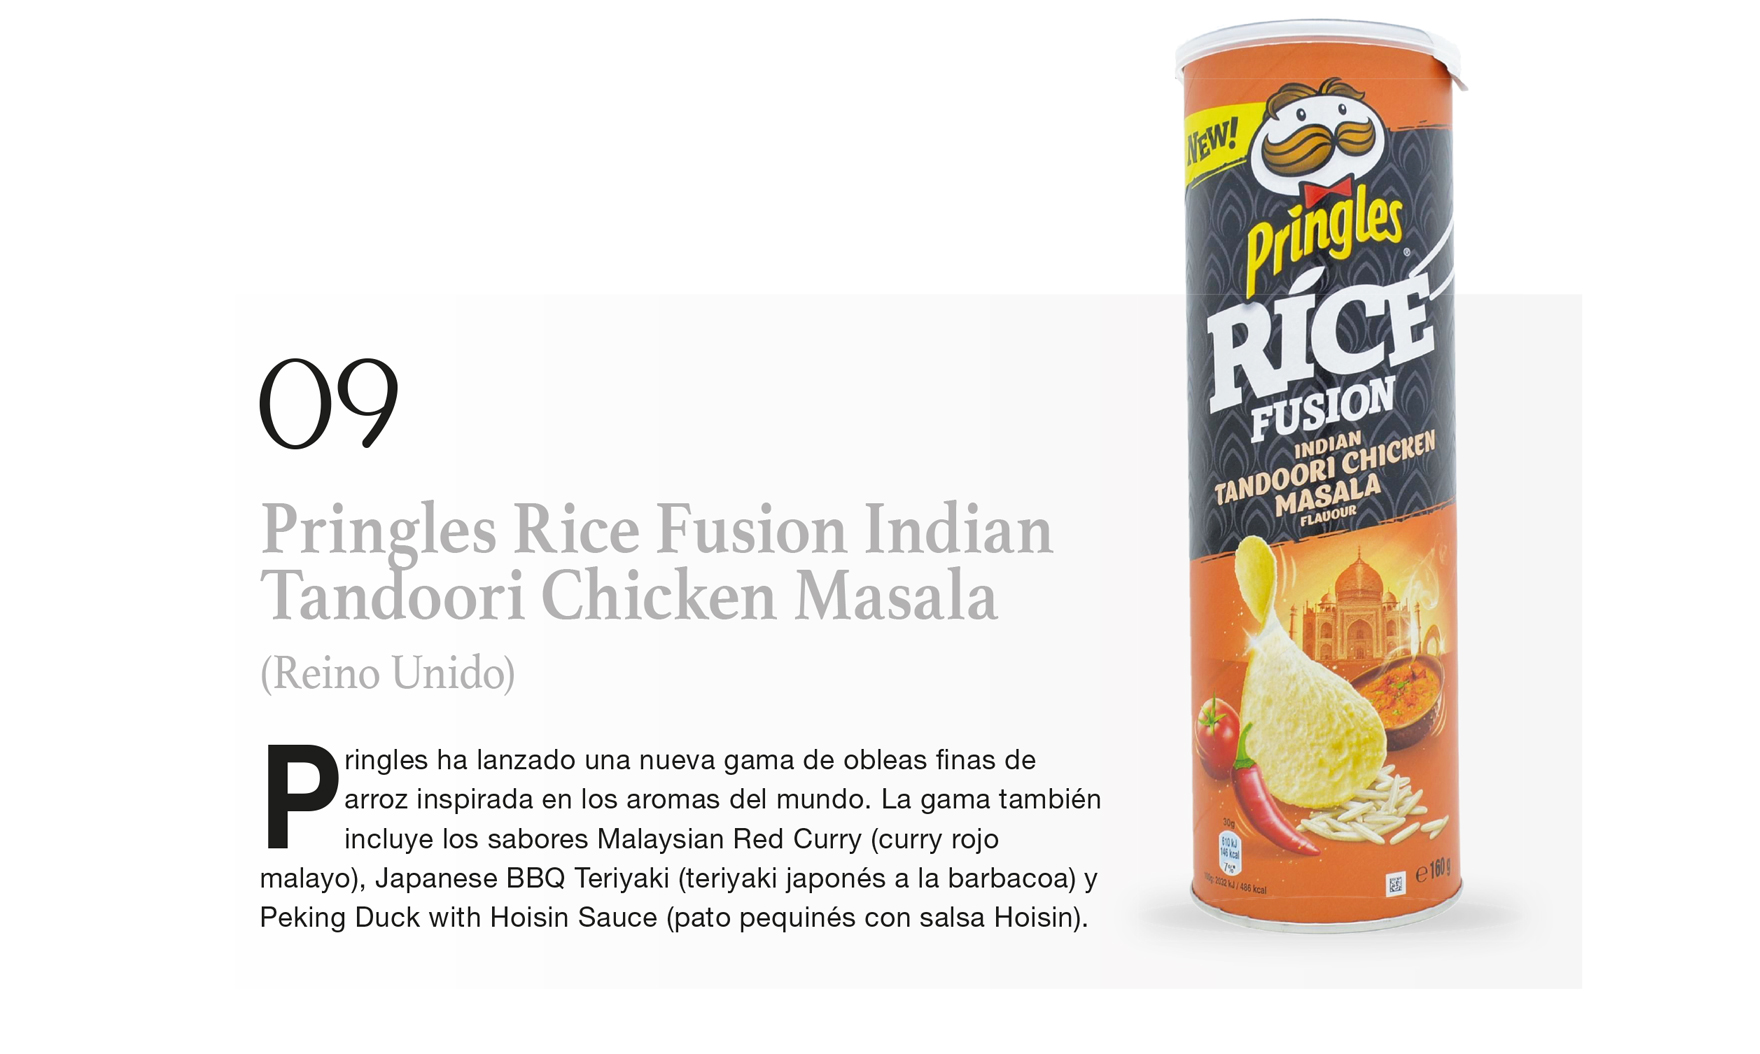 Pringles Rice Fusion Indian Tandoori Chicken Masala (Reino Unido)